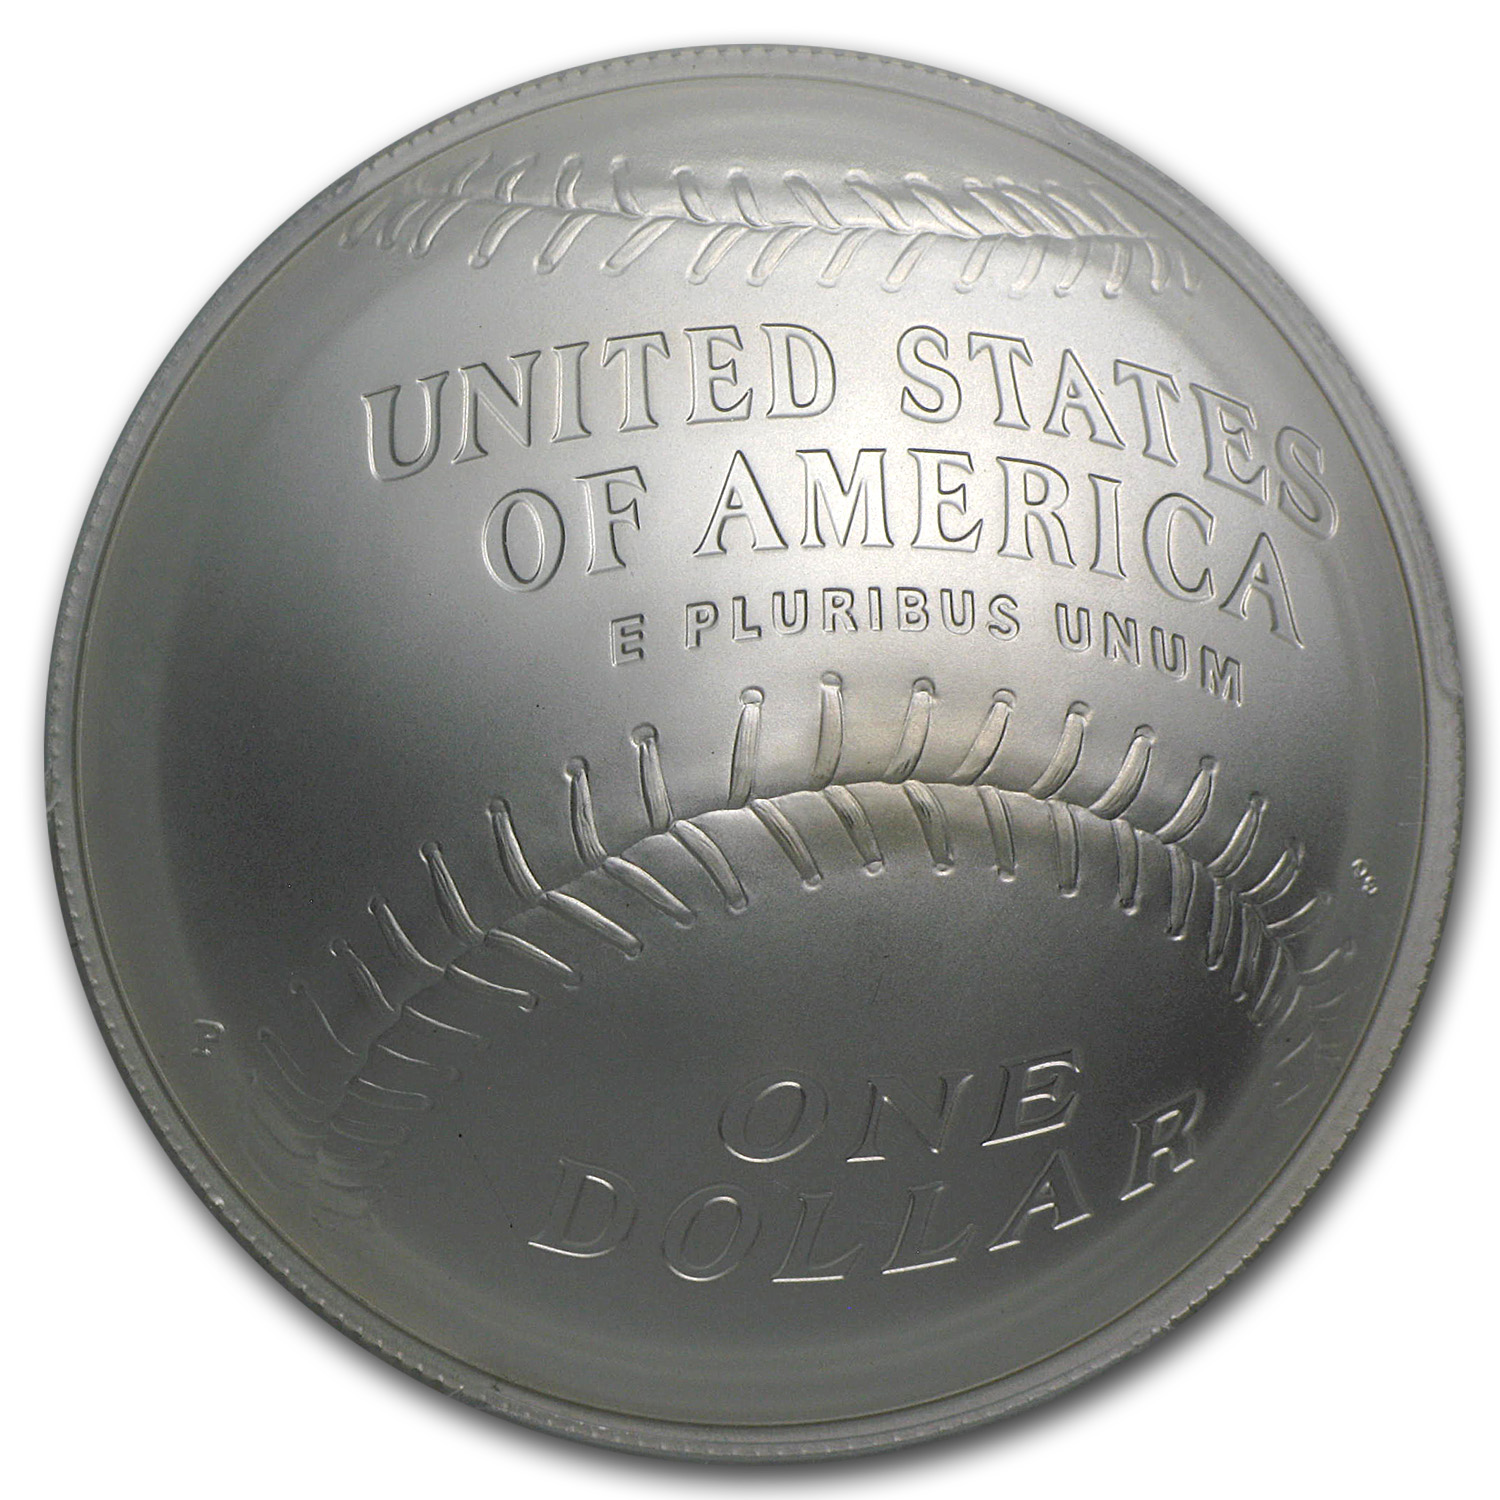 2014-P Baseball HOF - $1 Silver Commem-MS-70 PCGS - Banks